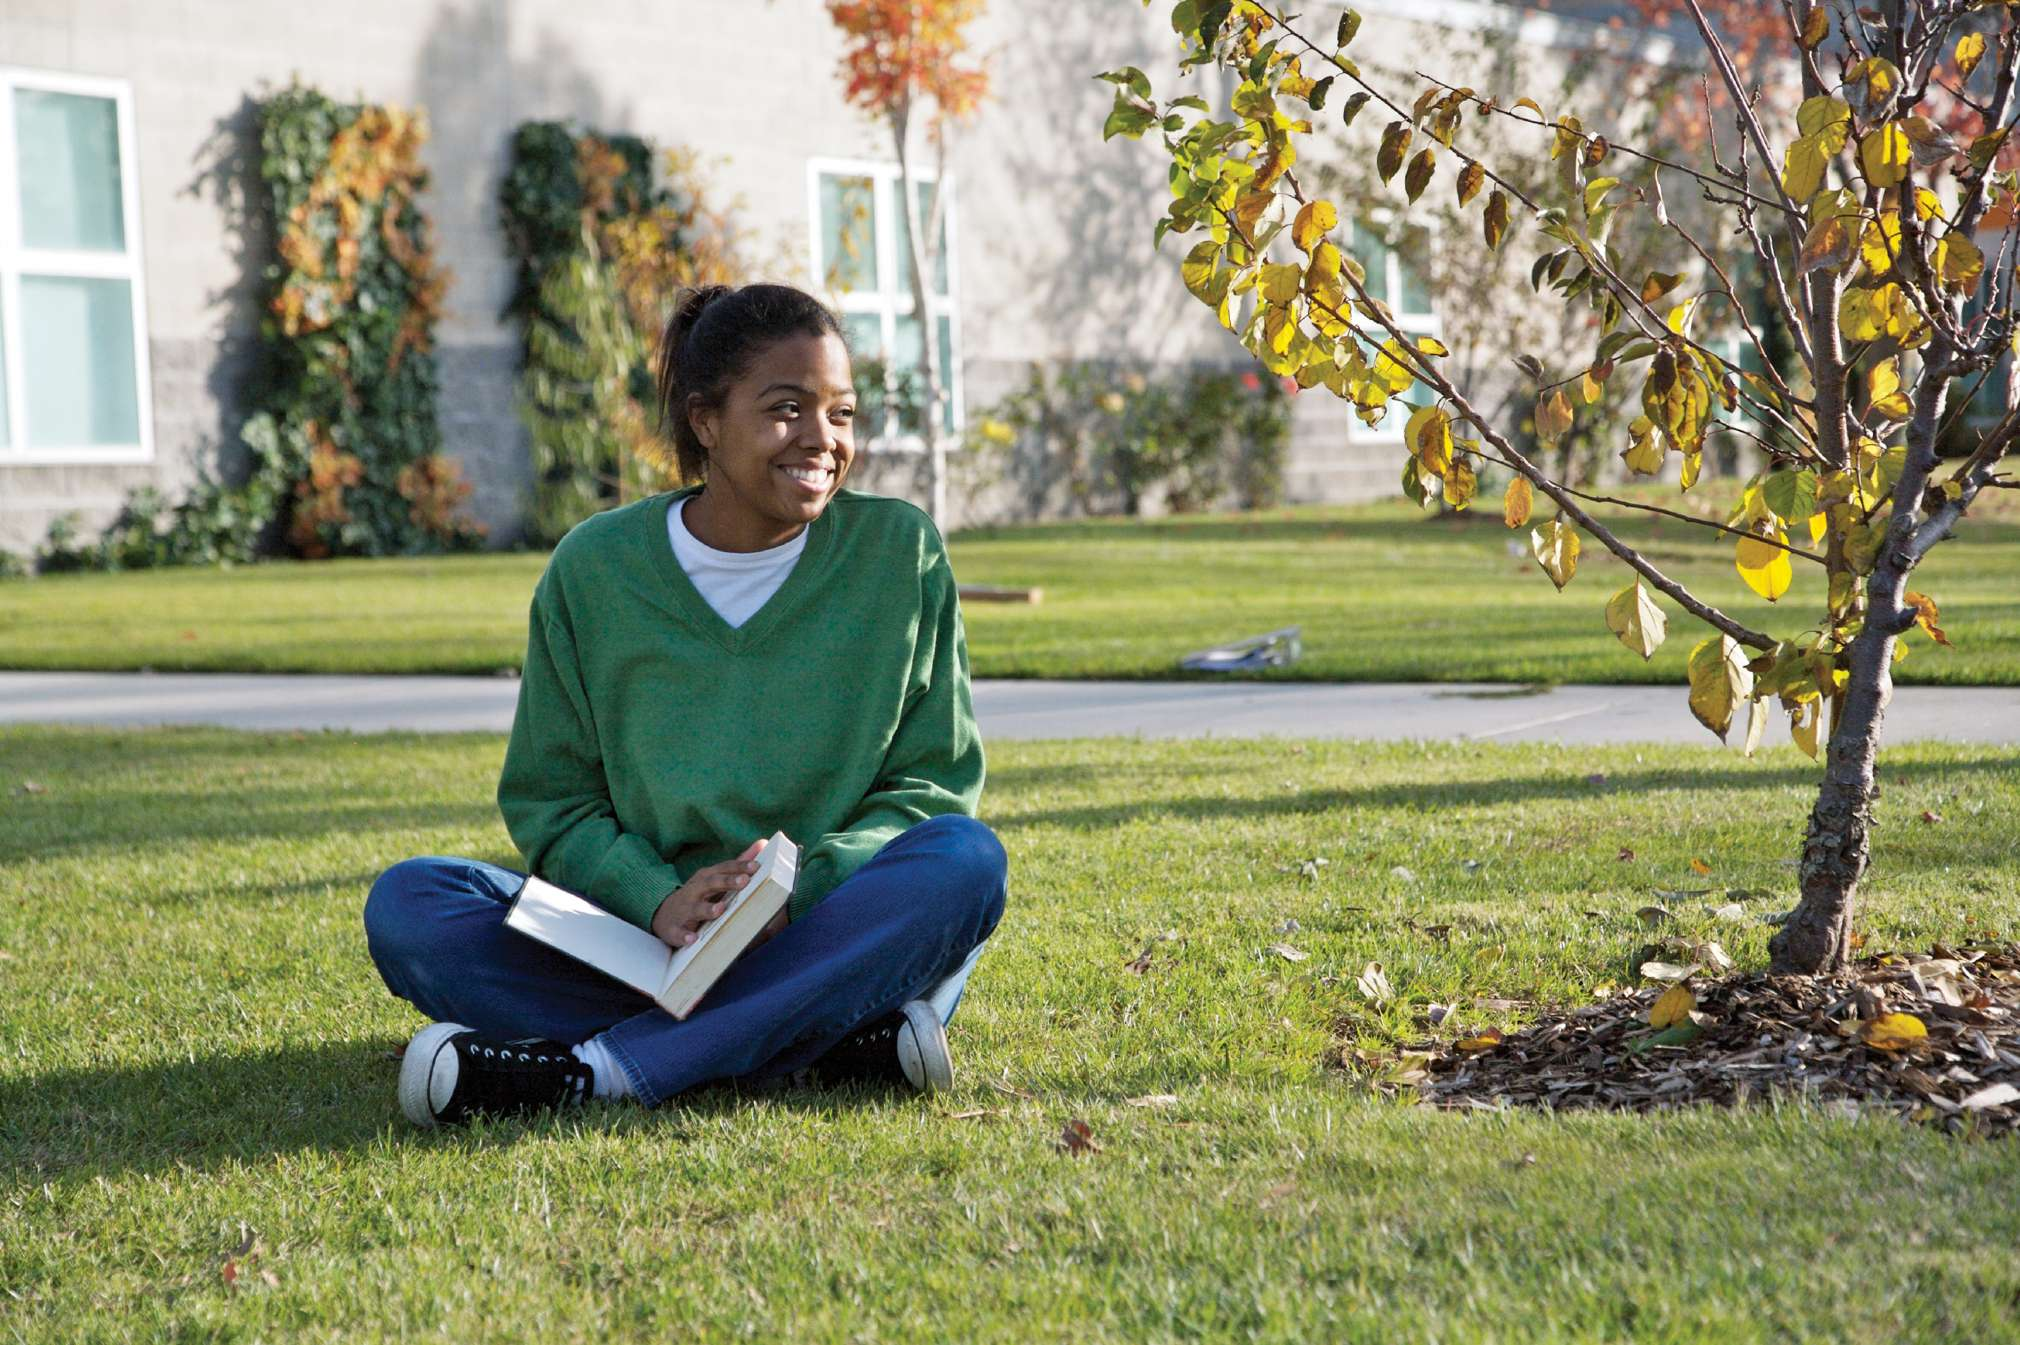 Young woman sitting on the grass reading a book